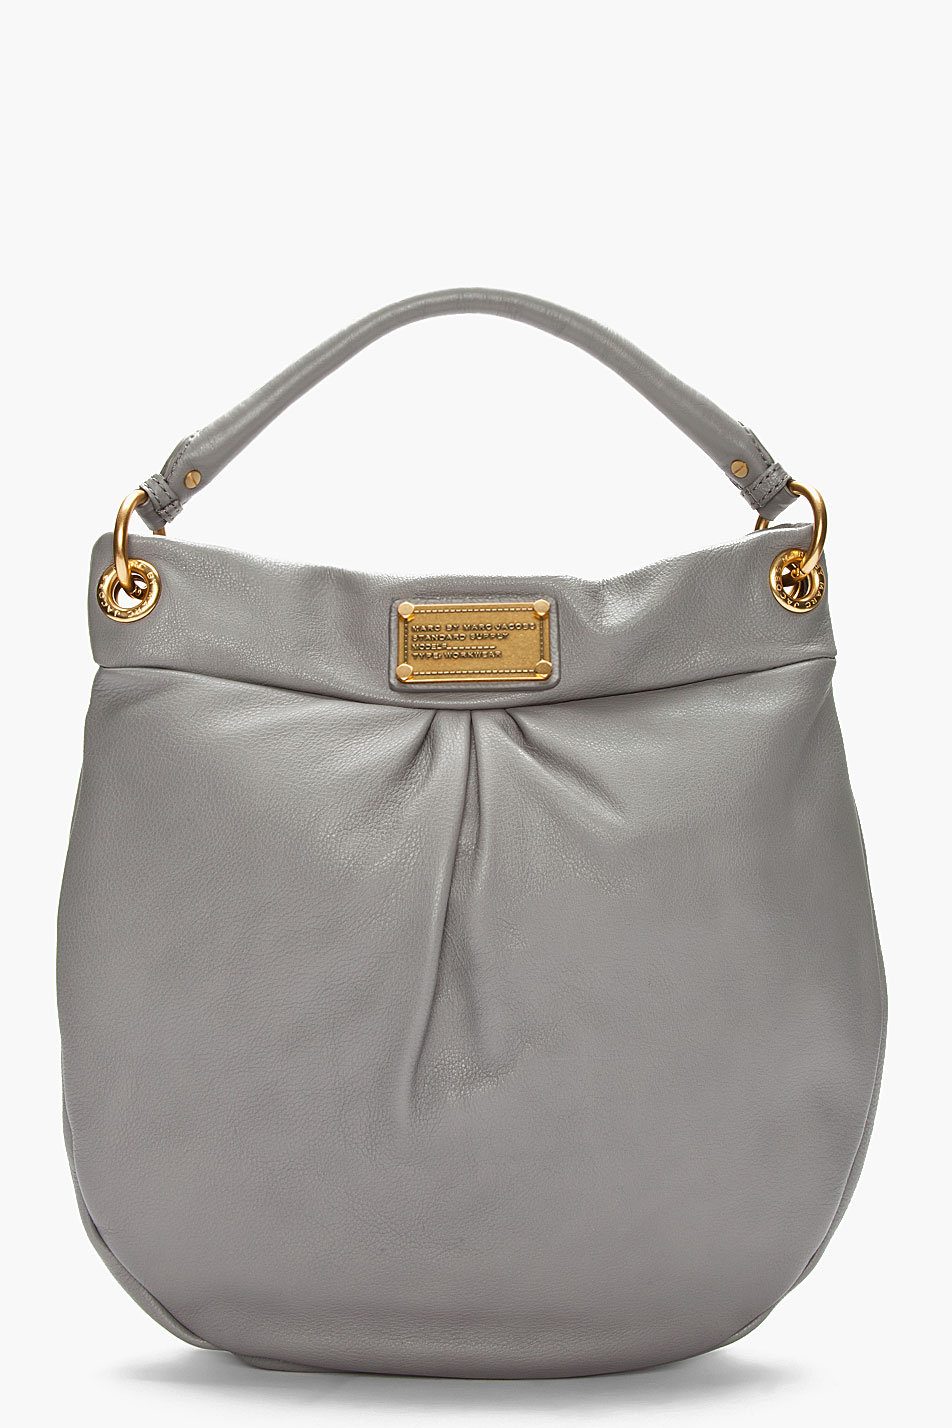 marc by marc jacobs grey leather hillier hobo bag in gray lyst. Black Bedroom Furniture Sets. Home Design Ideas